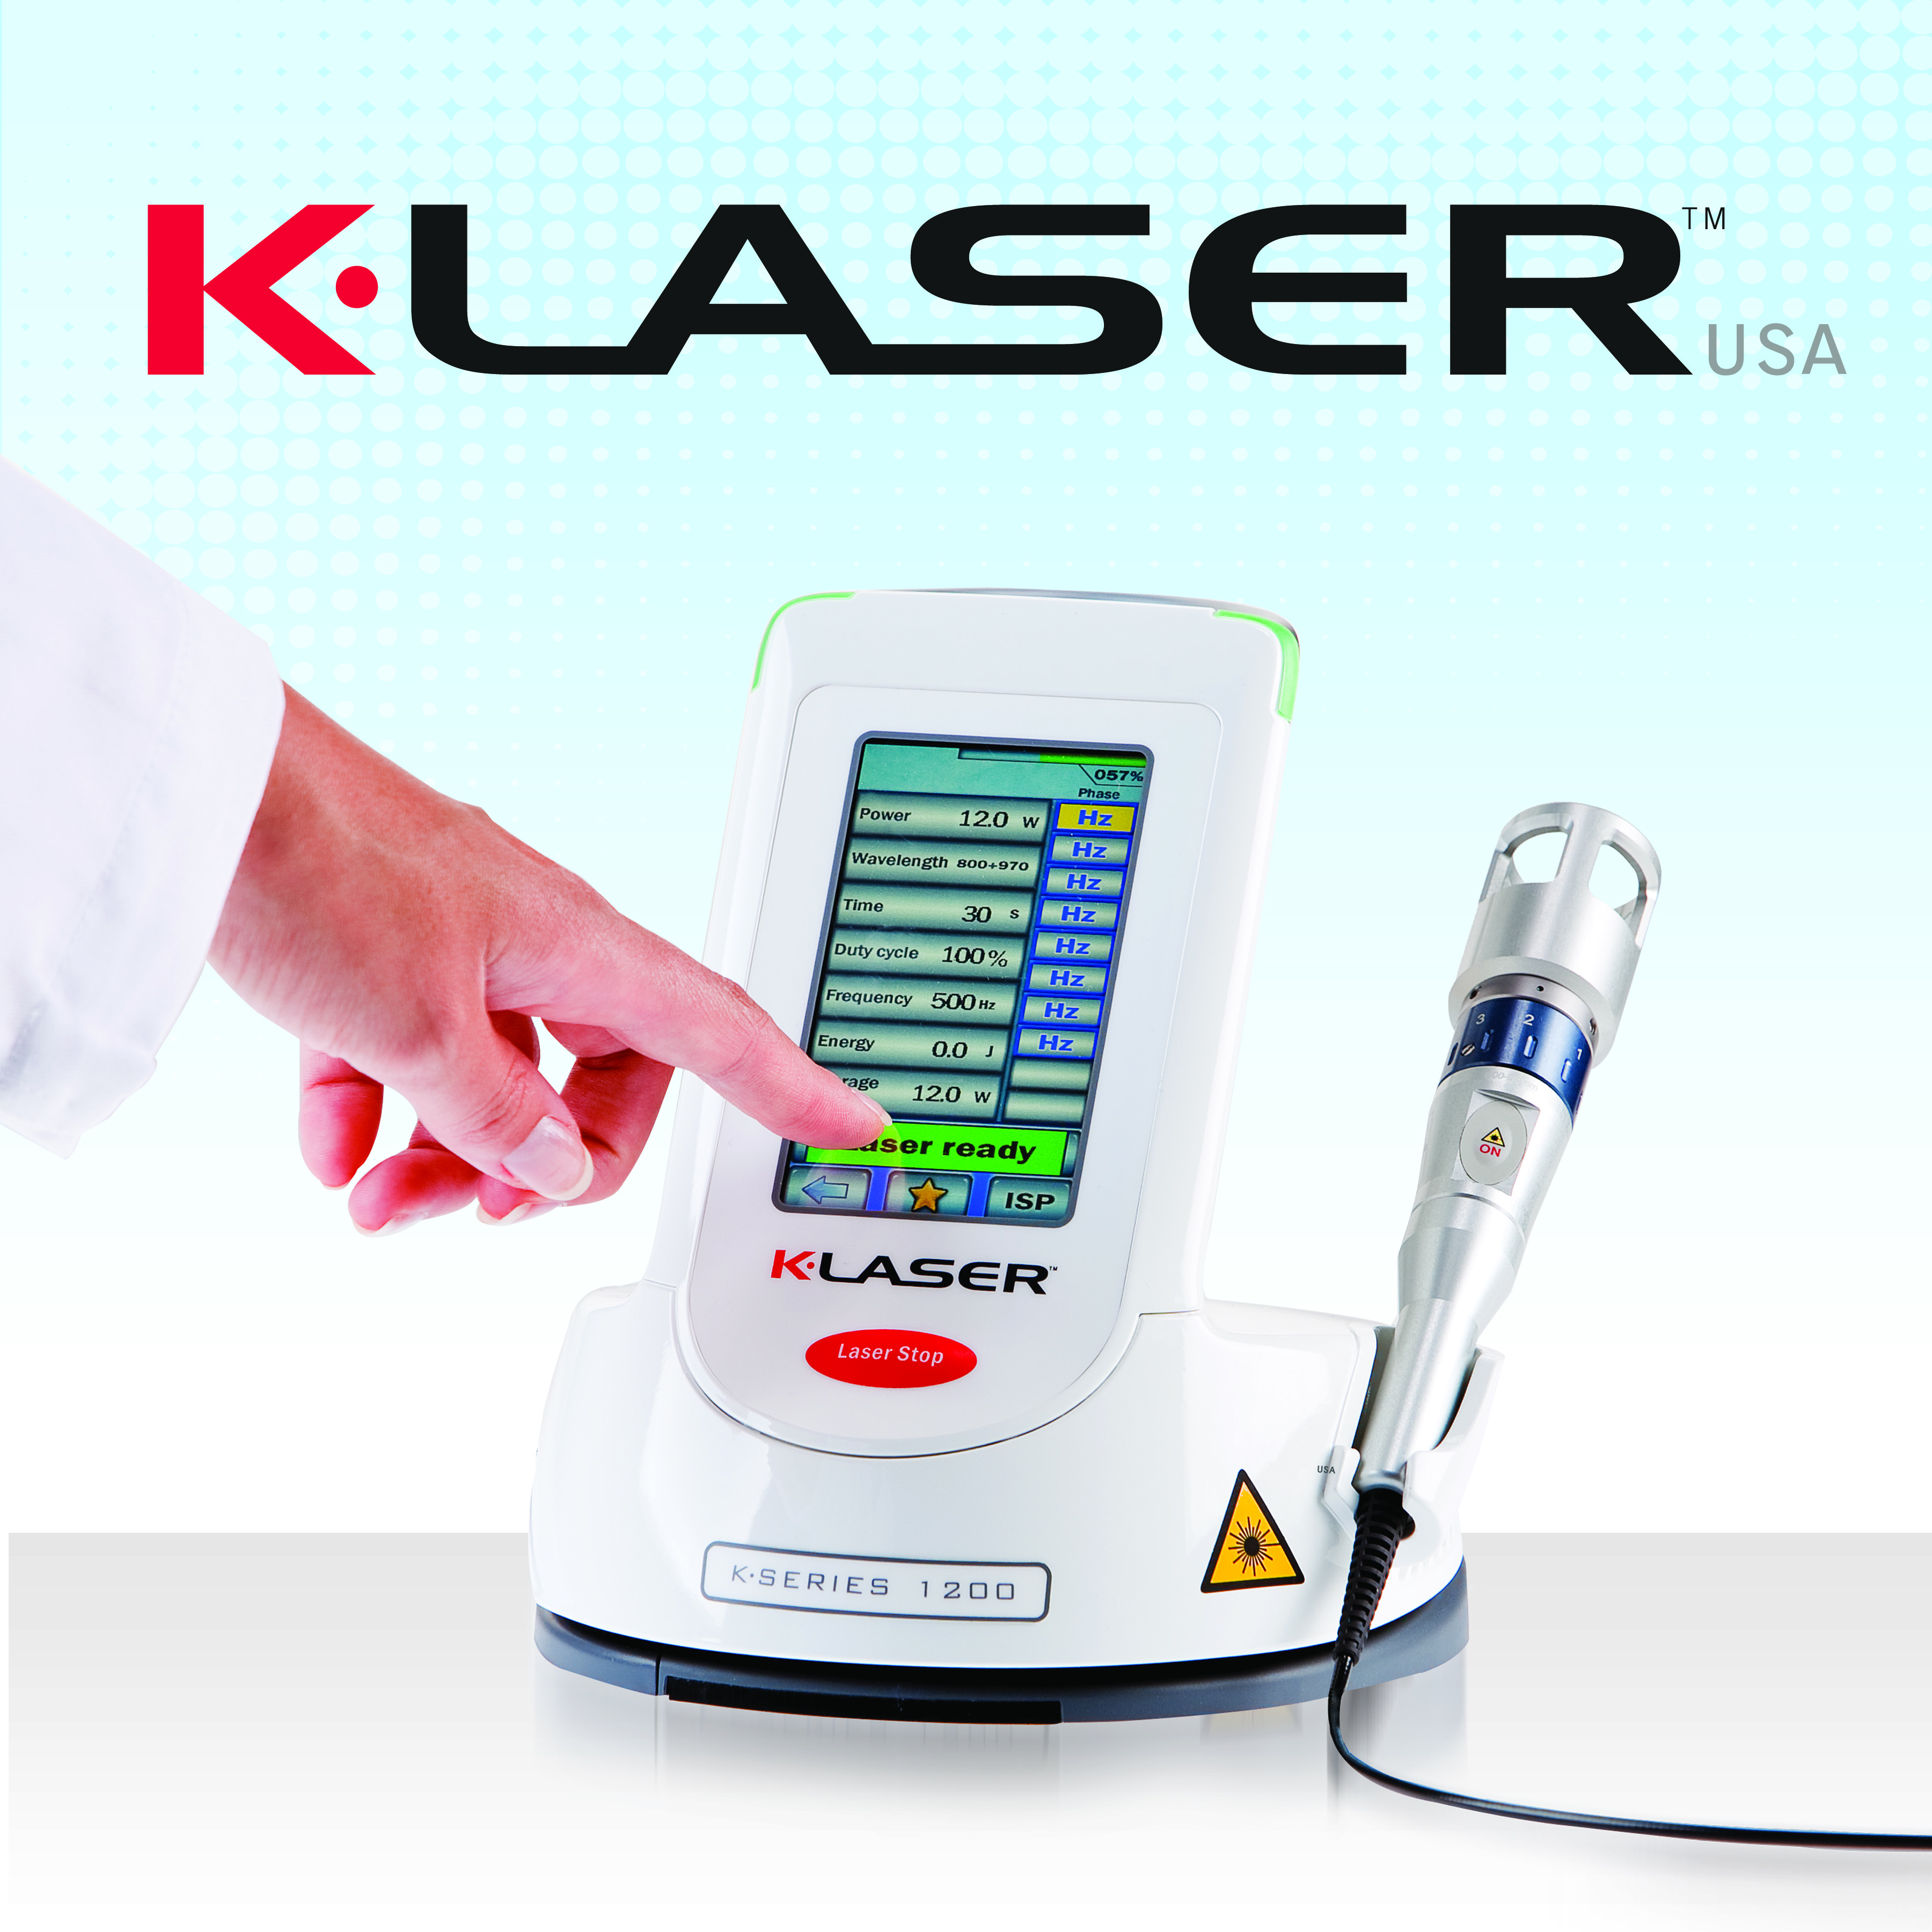 K-Laser Class IV Therapeutic Laser